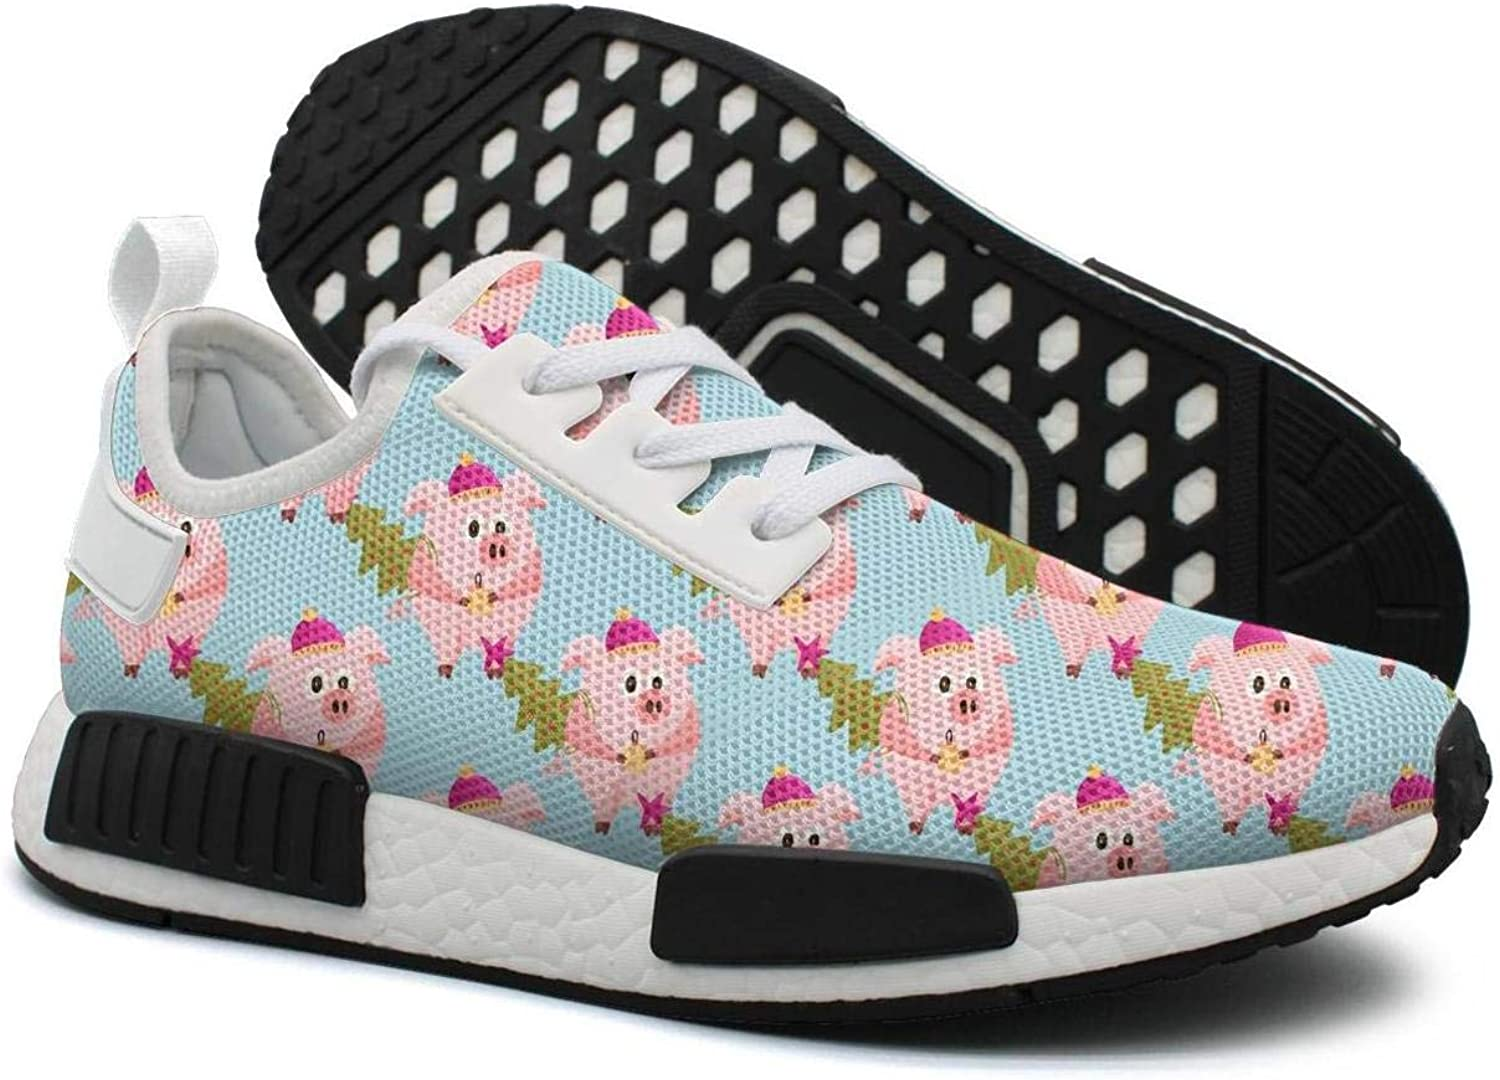 New Year 2019 Pink Pig with Christmas Tree Women's Jogger Lightweight Sneaker Gym Outdoor Sports shoes